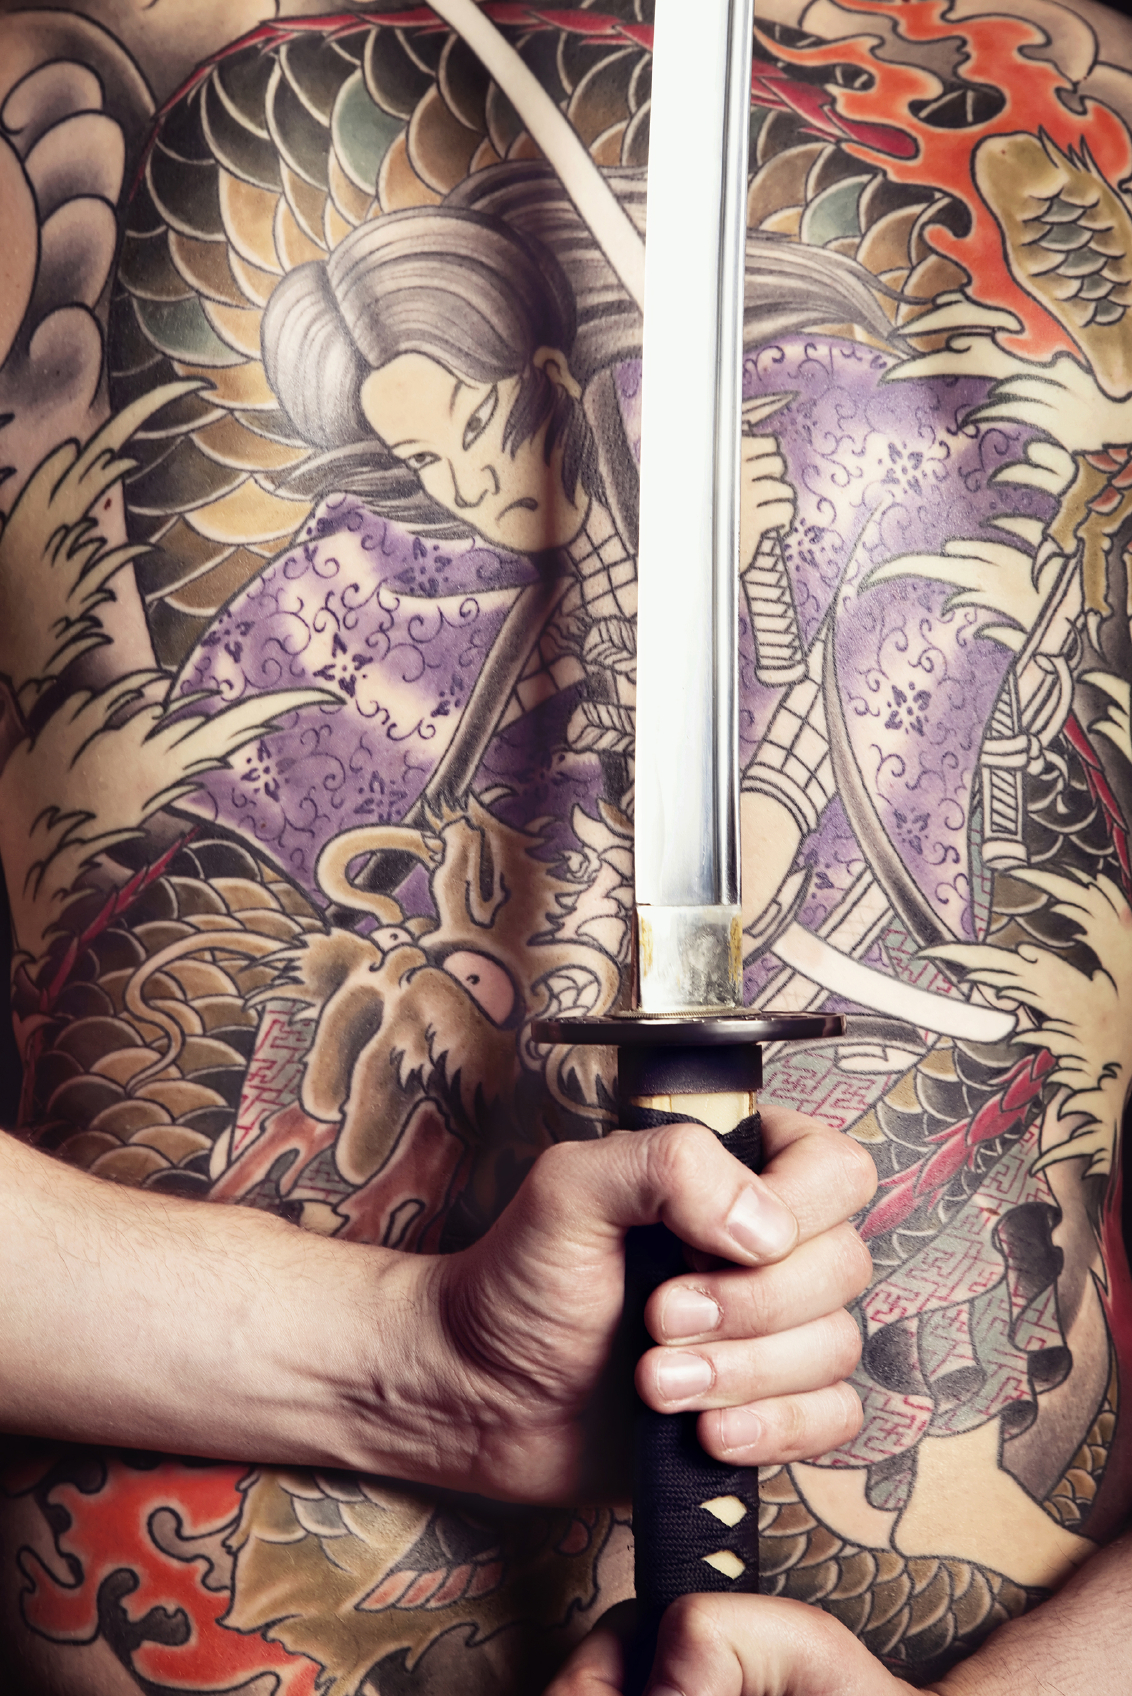 The Yakuza are famed for their elaboratetattoos